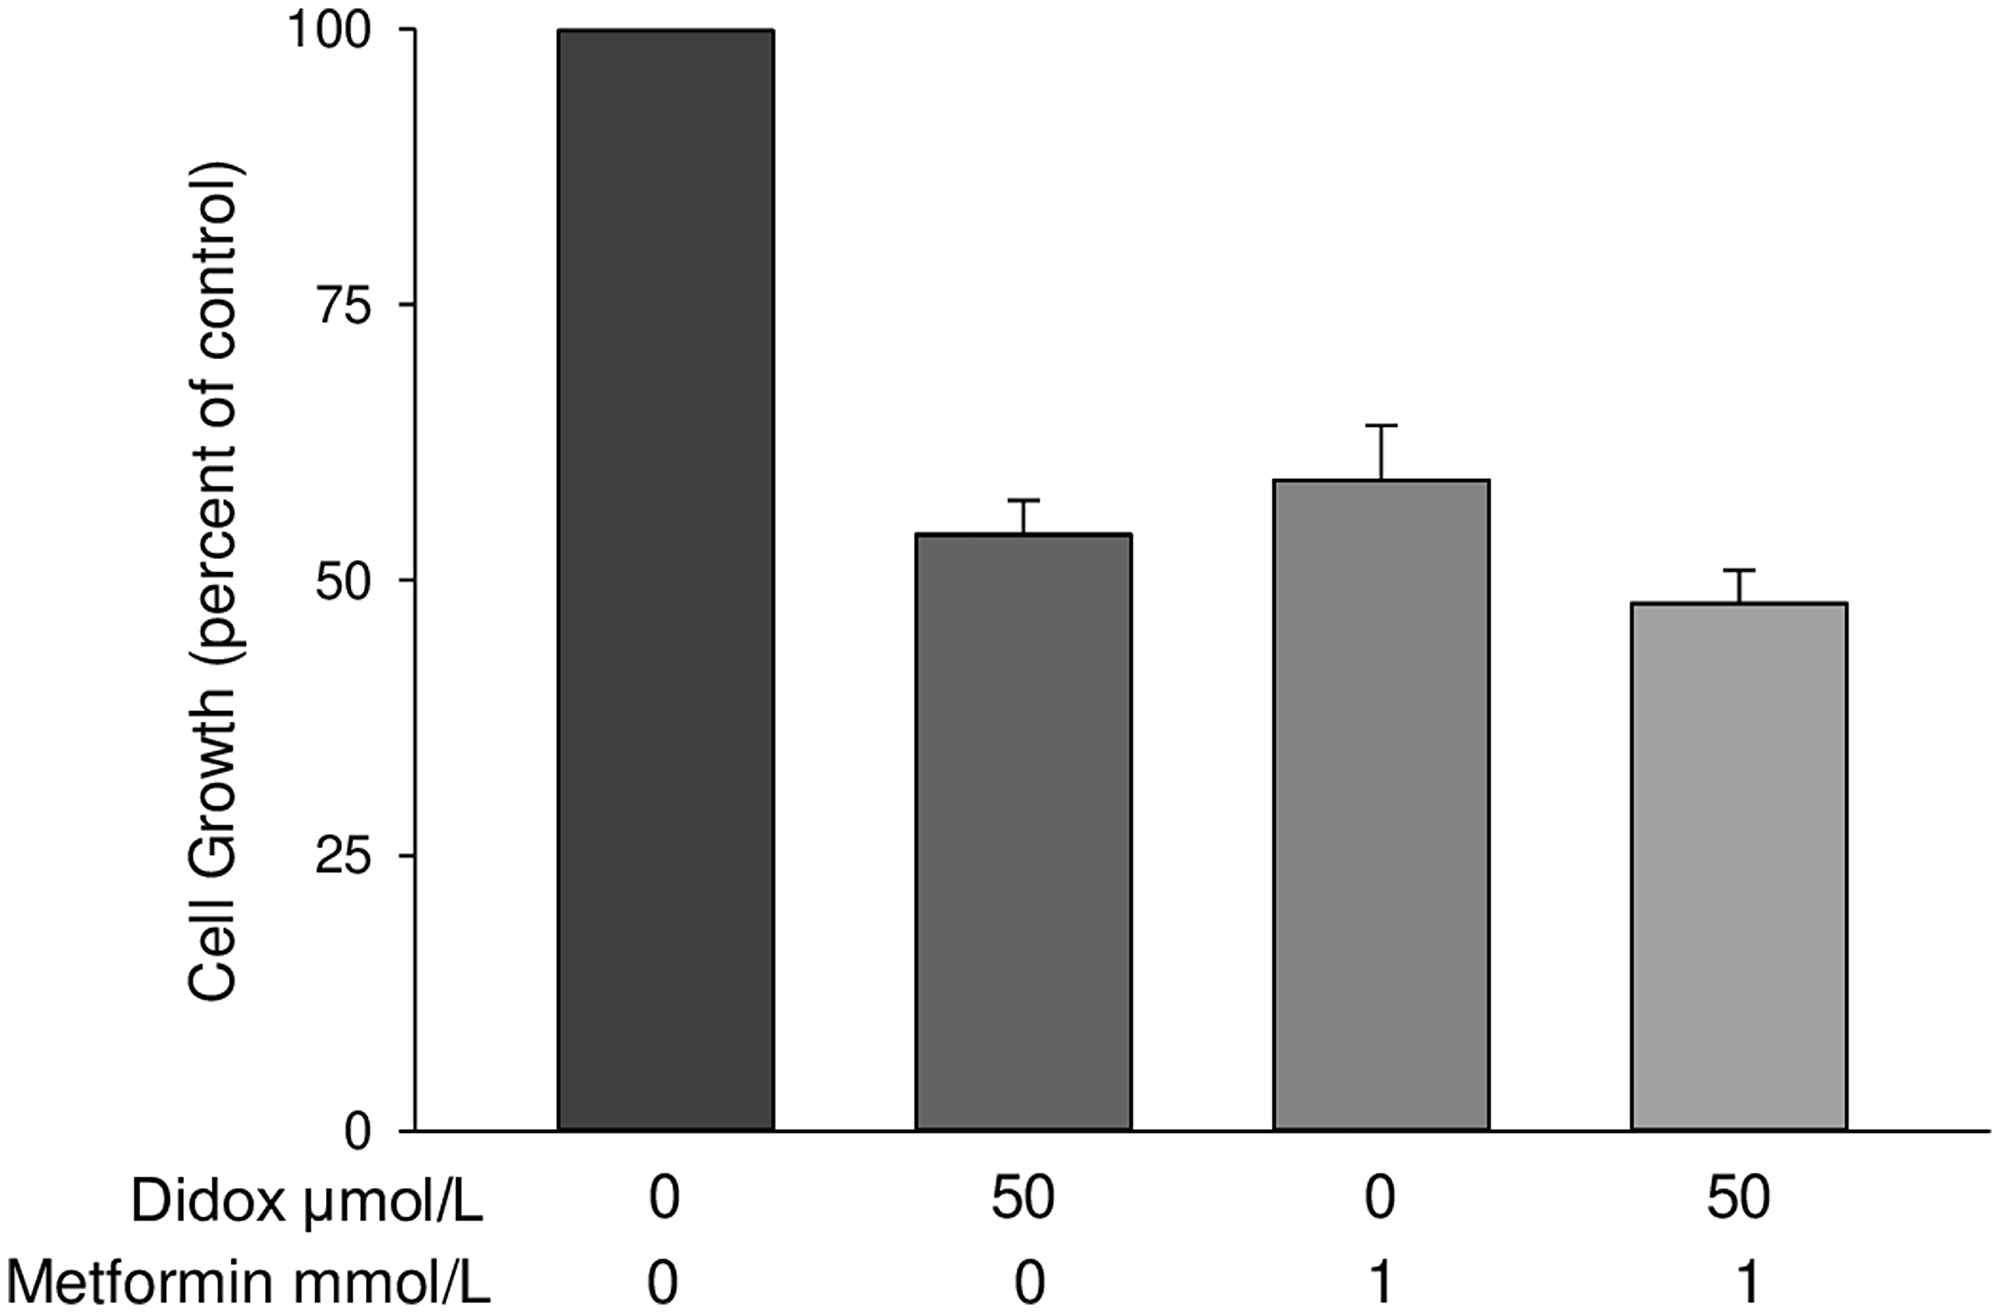 Metformin does not enhance the cytotoxicity of the RR inhibitor Didox.